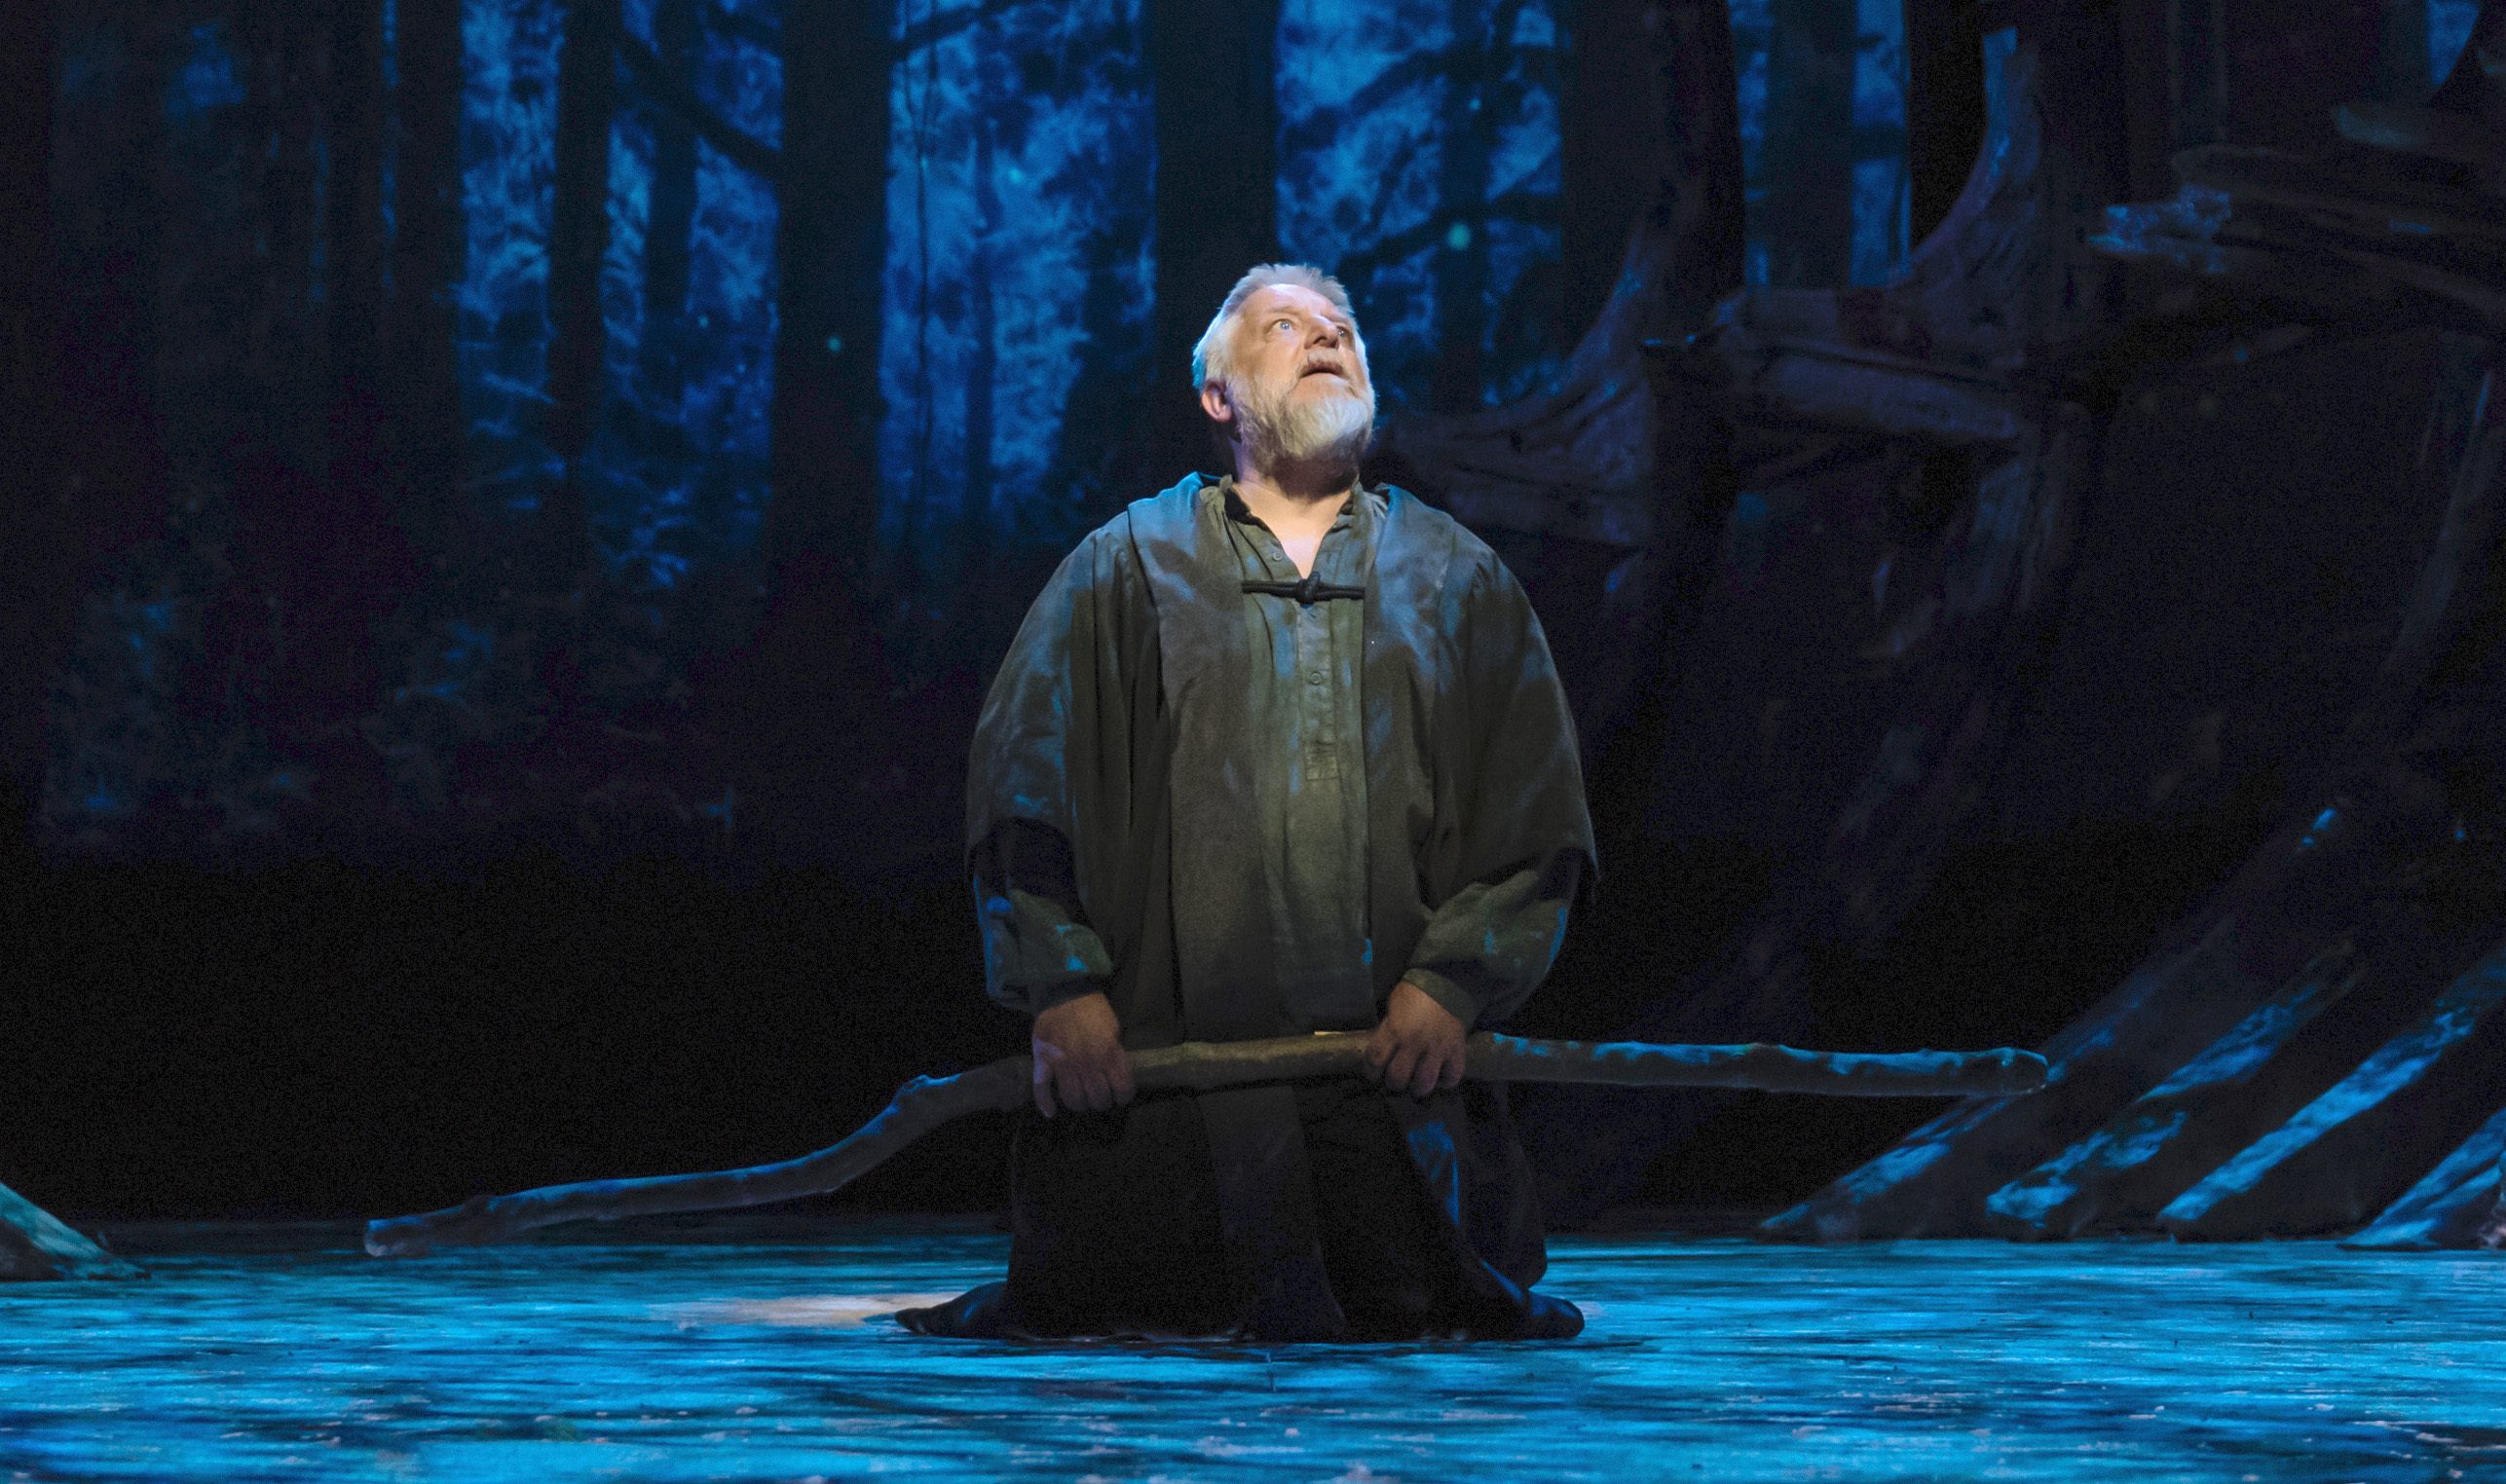 See Simon Russell Beale as Prospero in hi def at your local movie theater